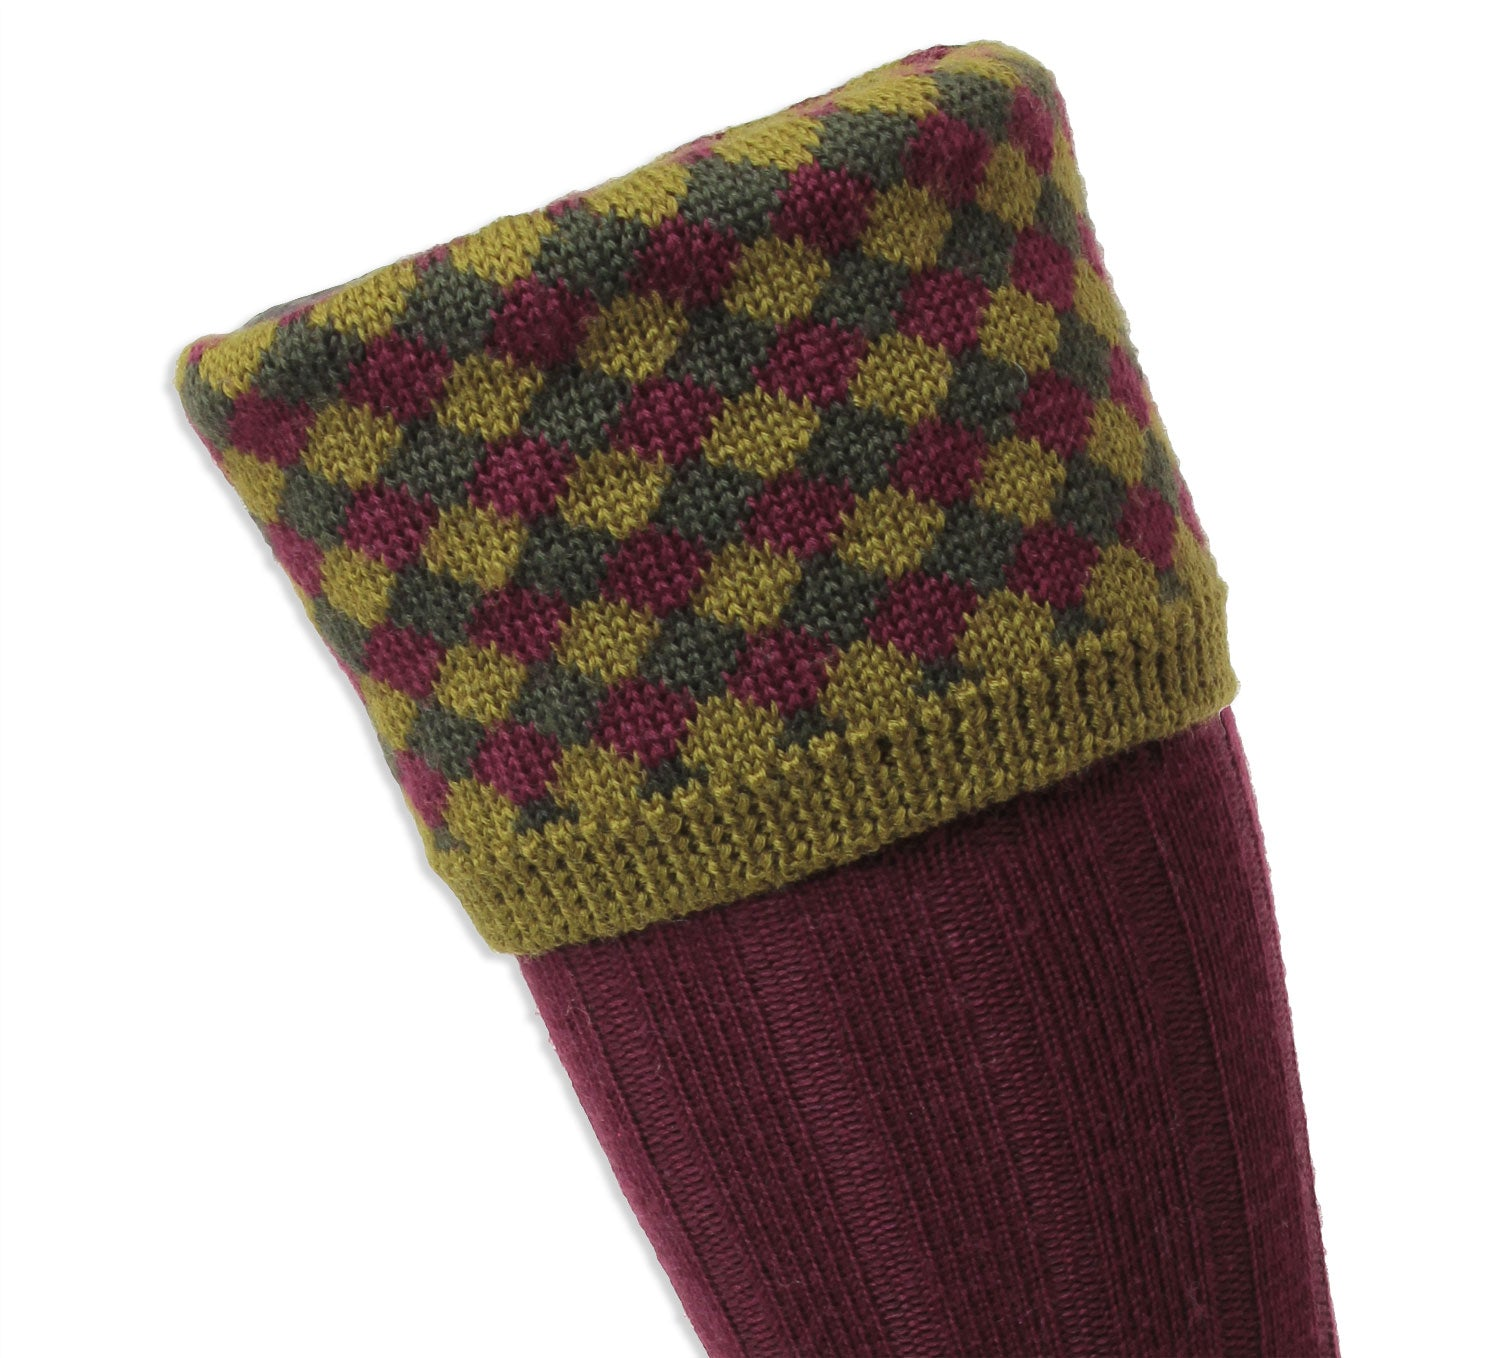 Harlequinn top pattern sock